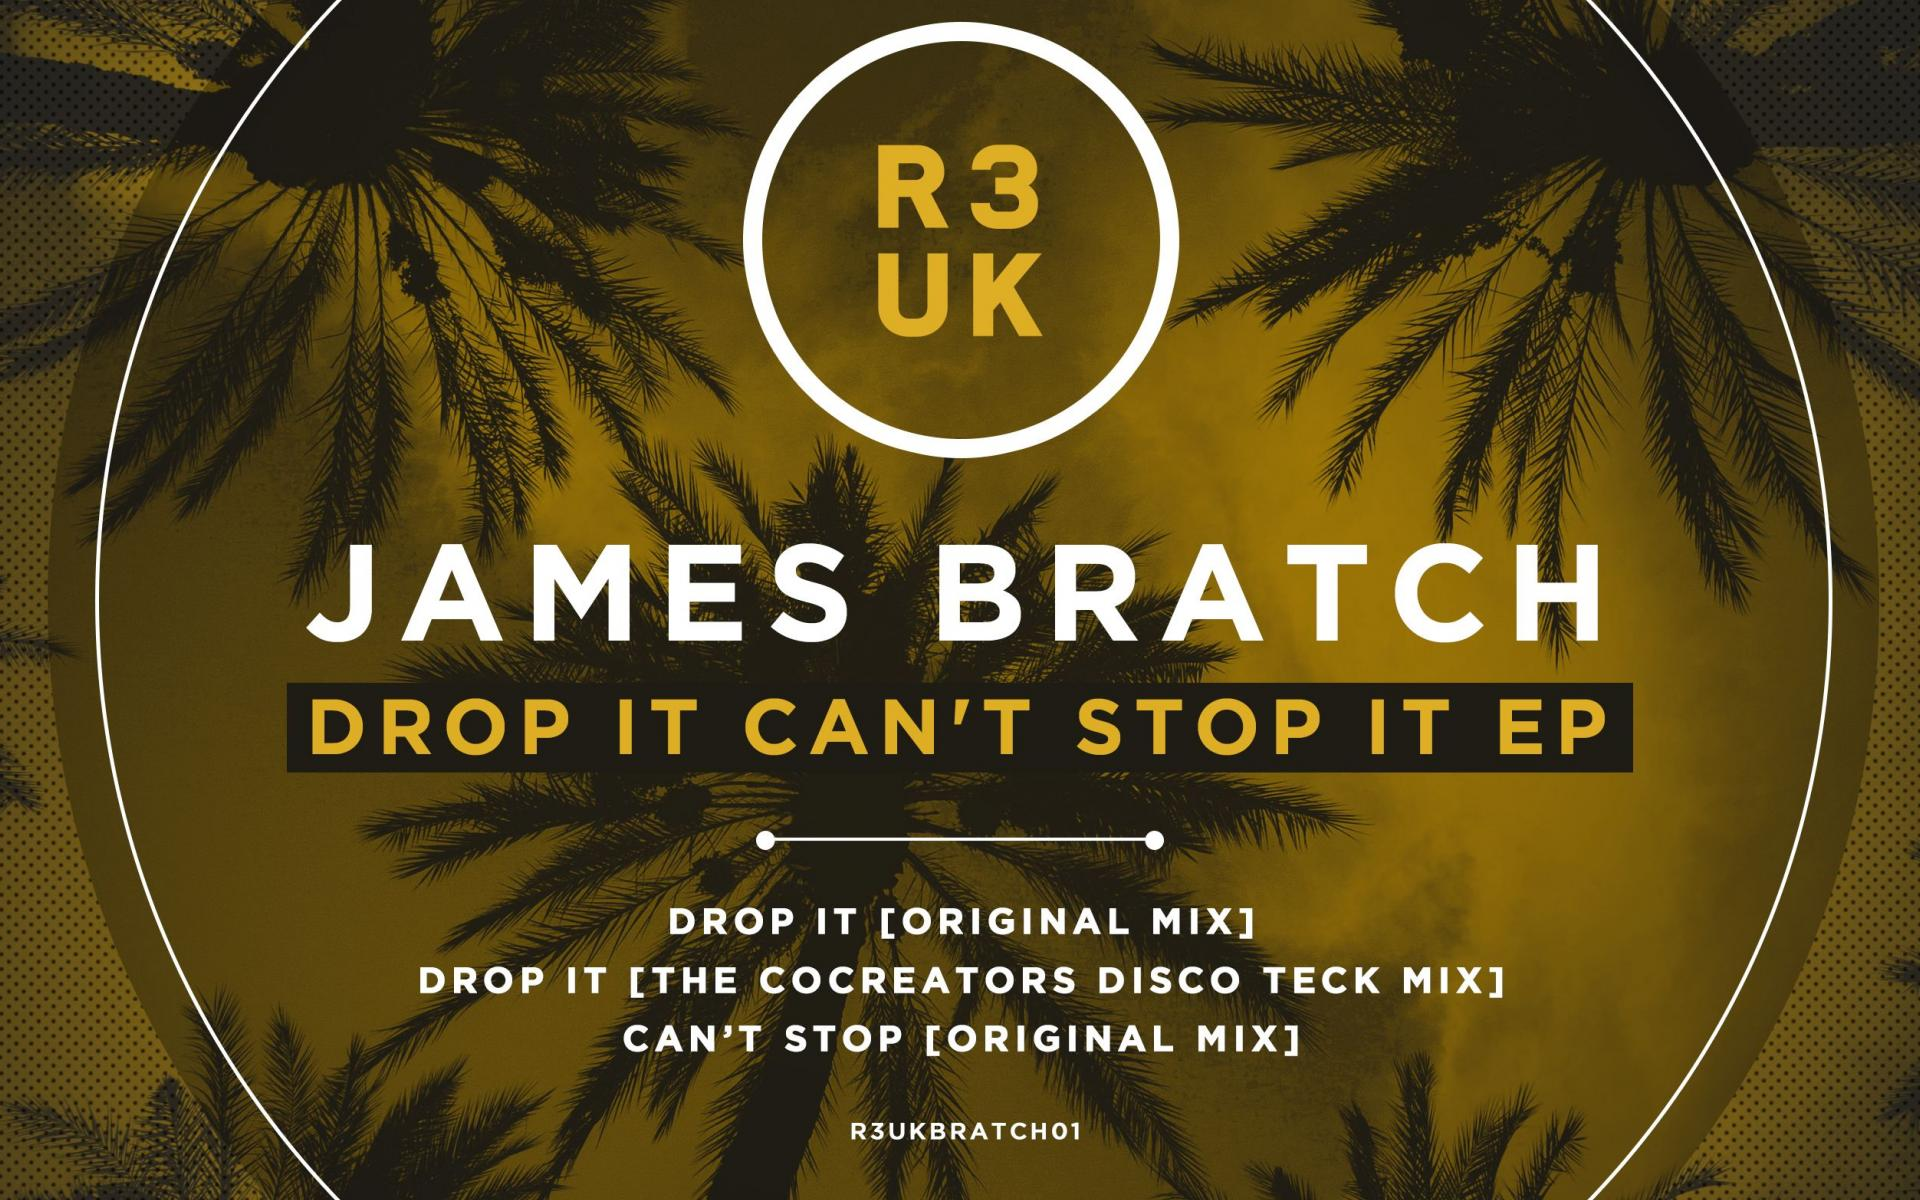 James Bratch - Drop It Can't Stop It Ep (The CoCreators Disco Teck Mix)